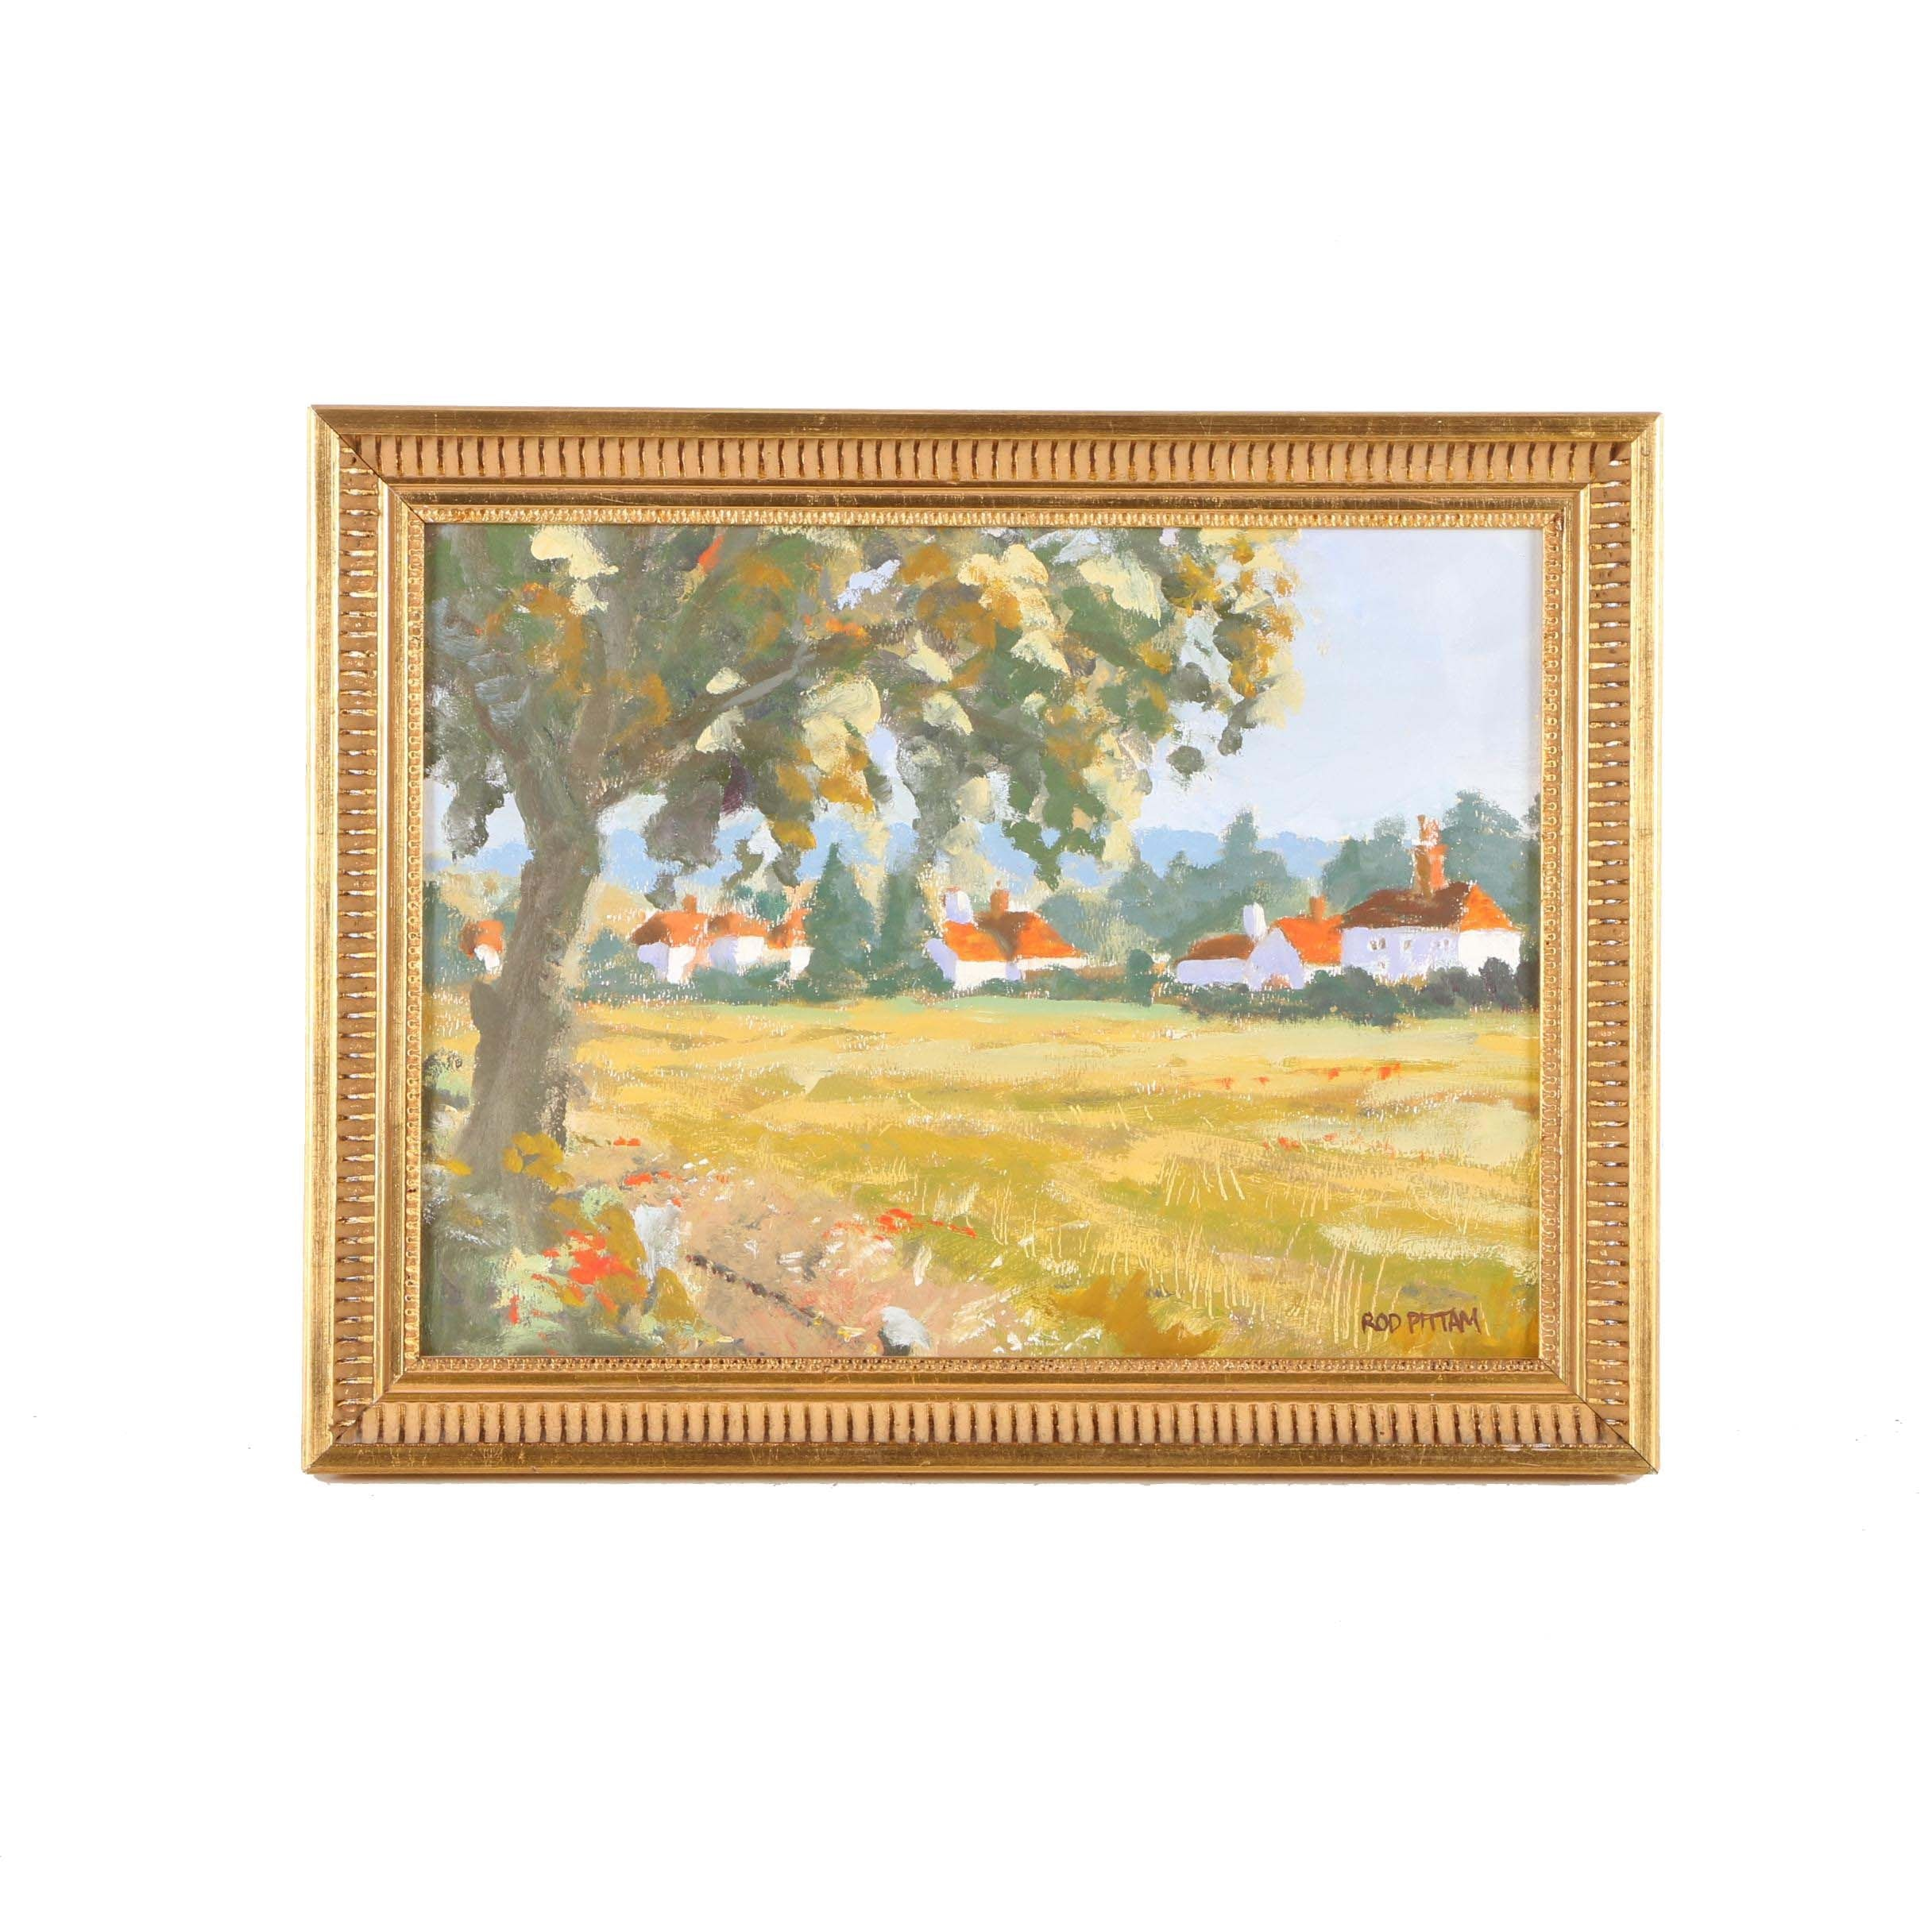 Rod Pittam Oil Painting on Mounted Paper of Villa